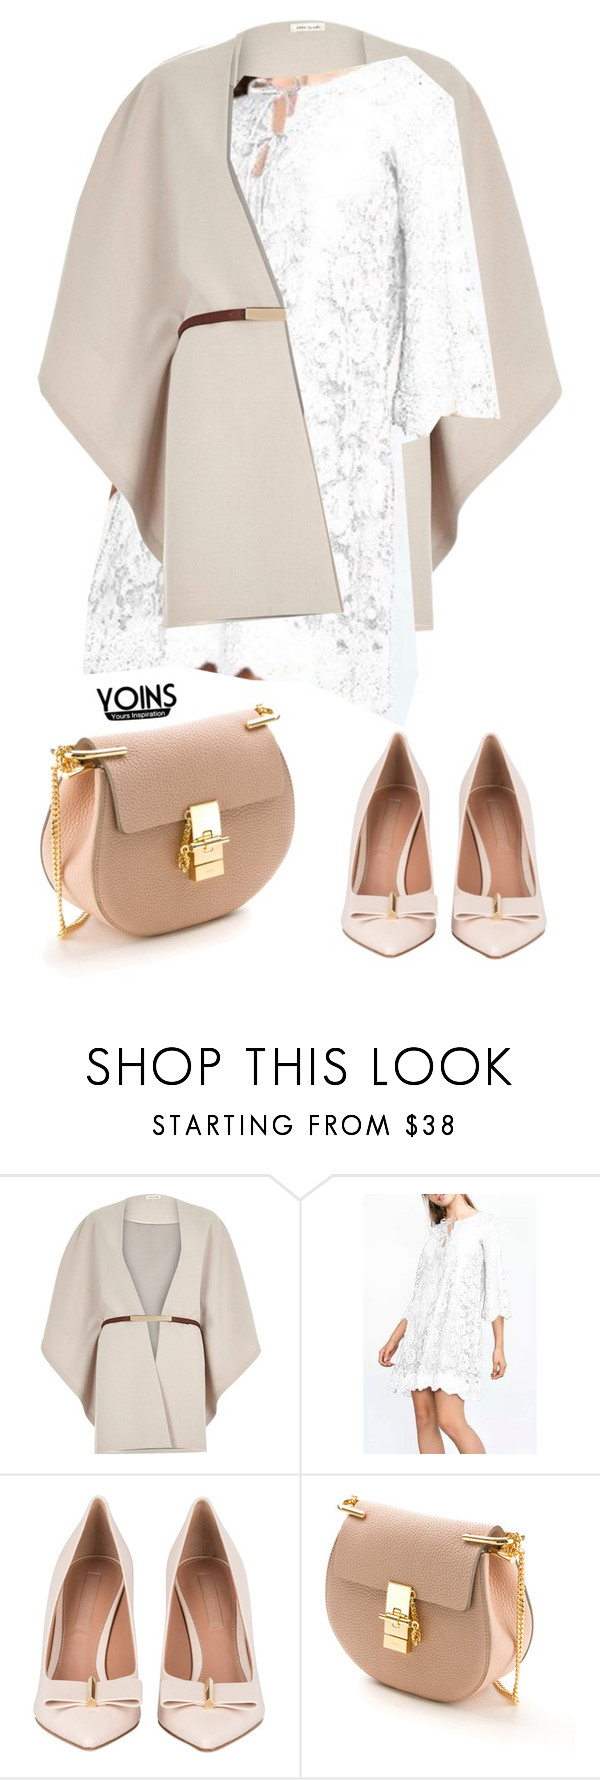 """""""YOINS CONTEST WHITE DRESS"""" by kafetoo ❤ liked on Polyvore featuring River Island, Chloé and yoins"""